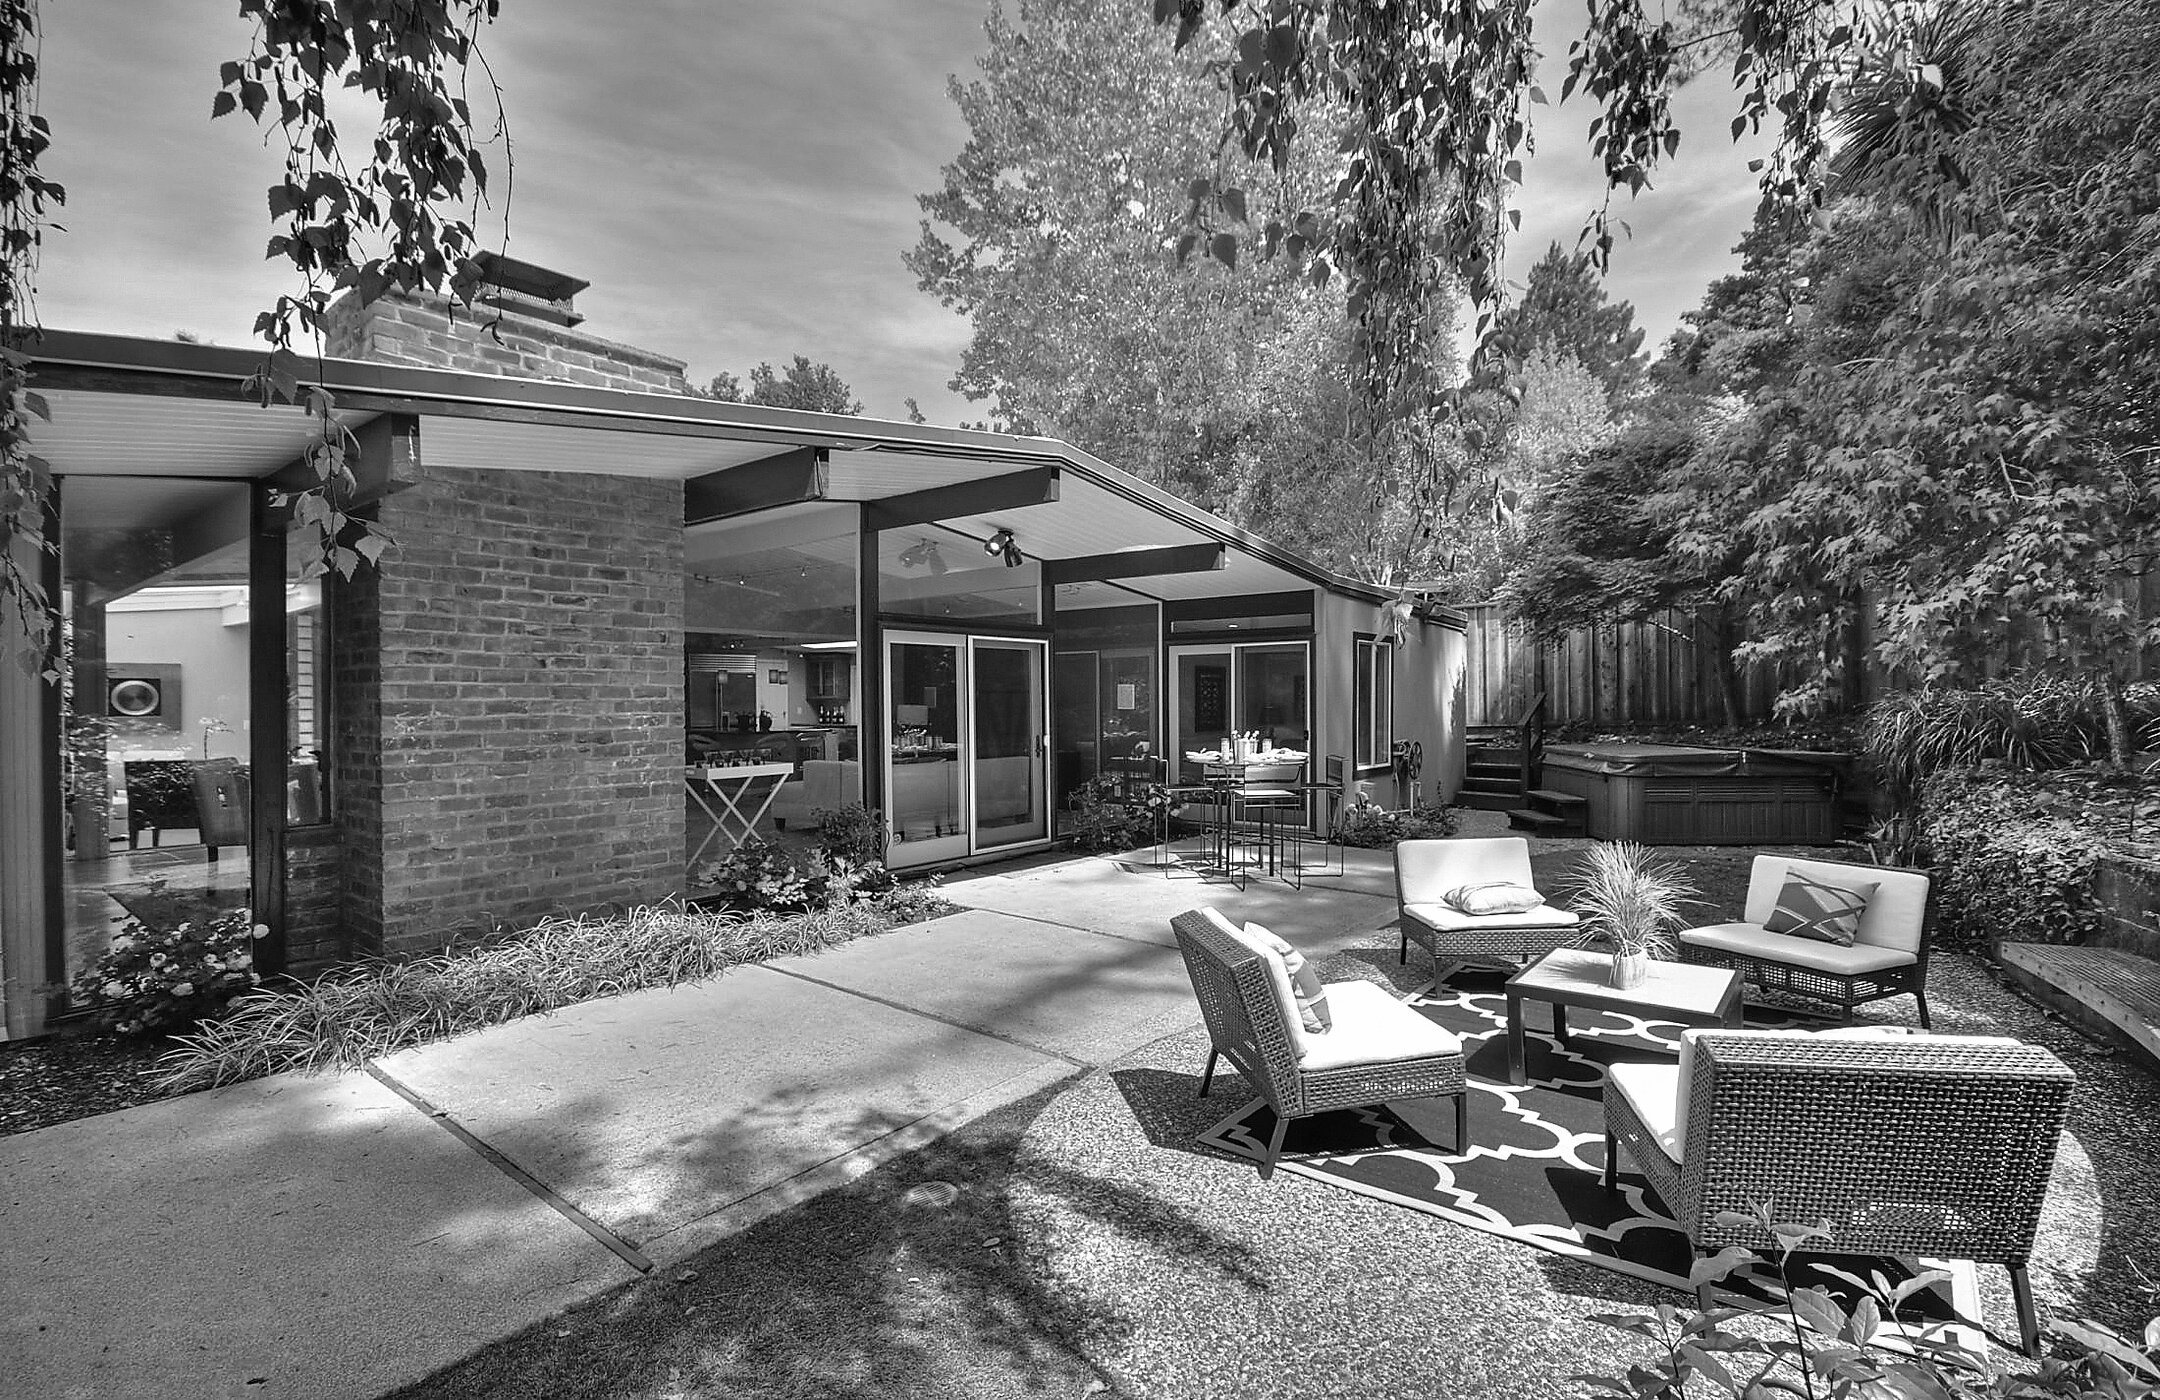 [Our Properties: Eichler home in San Mateo]